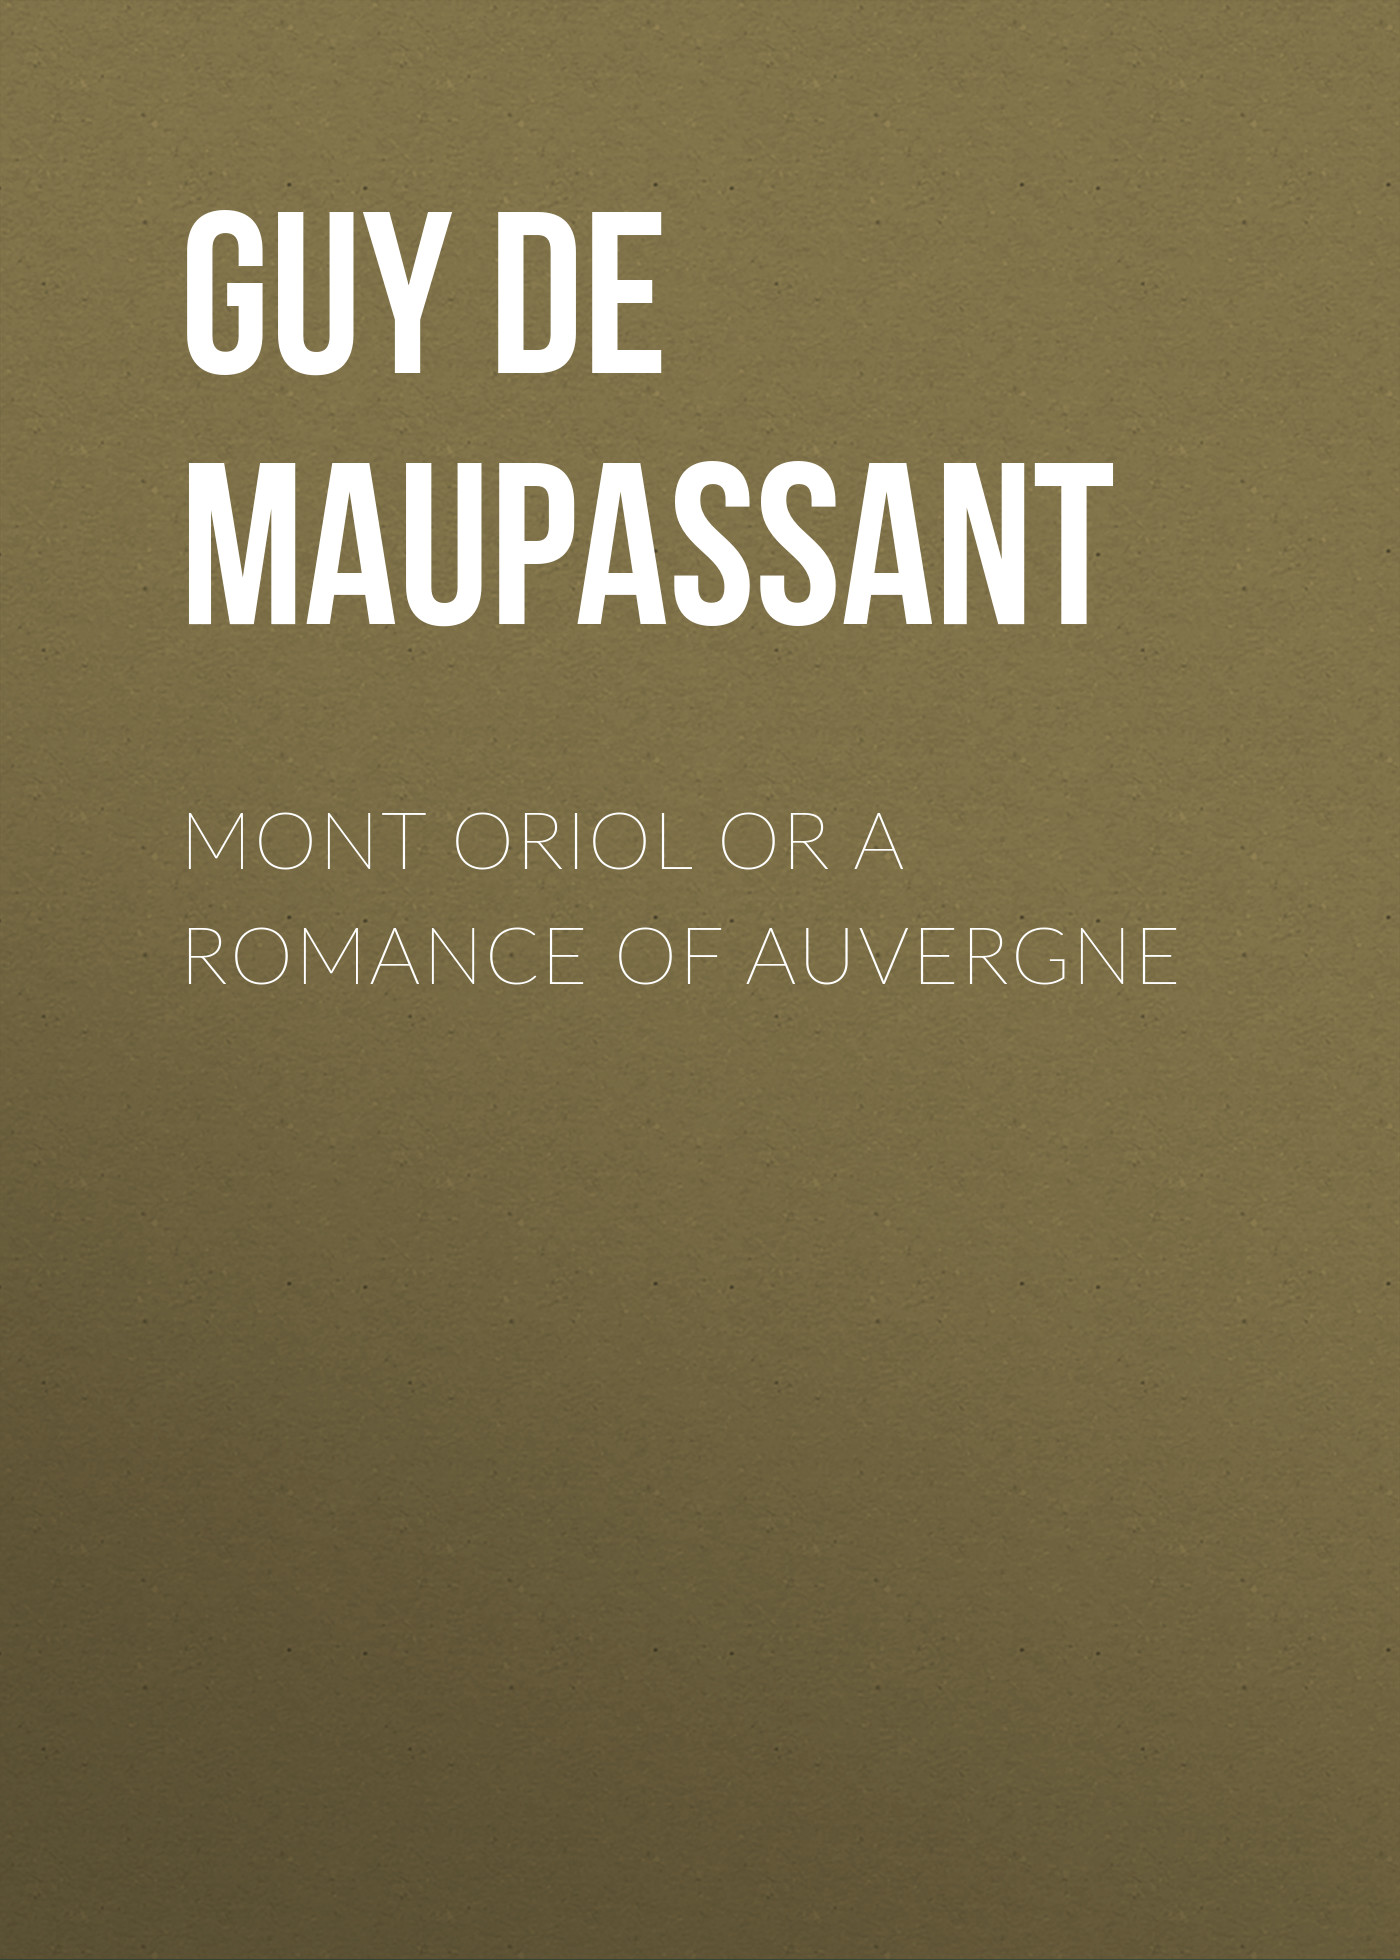 Mont Oriol or A Romance of Auvergne